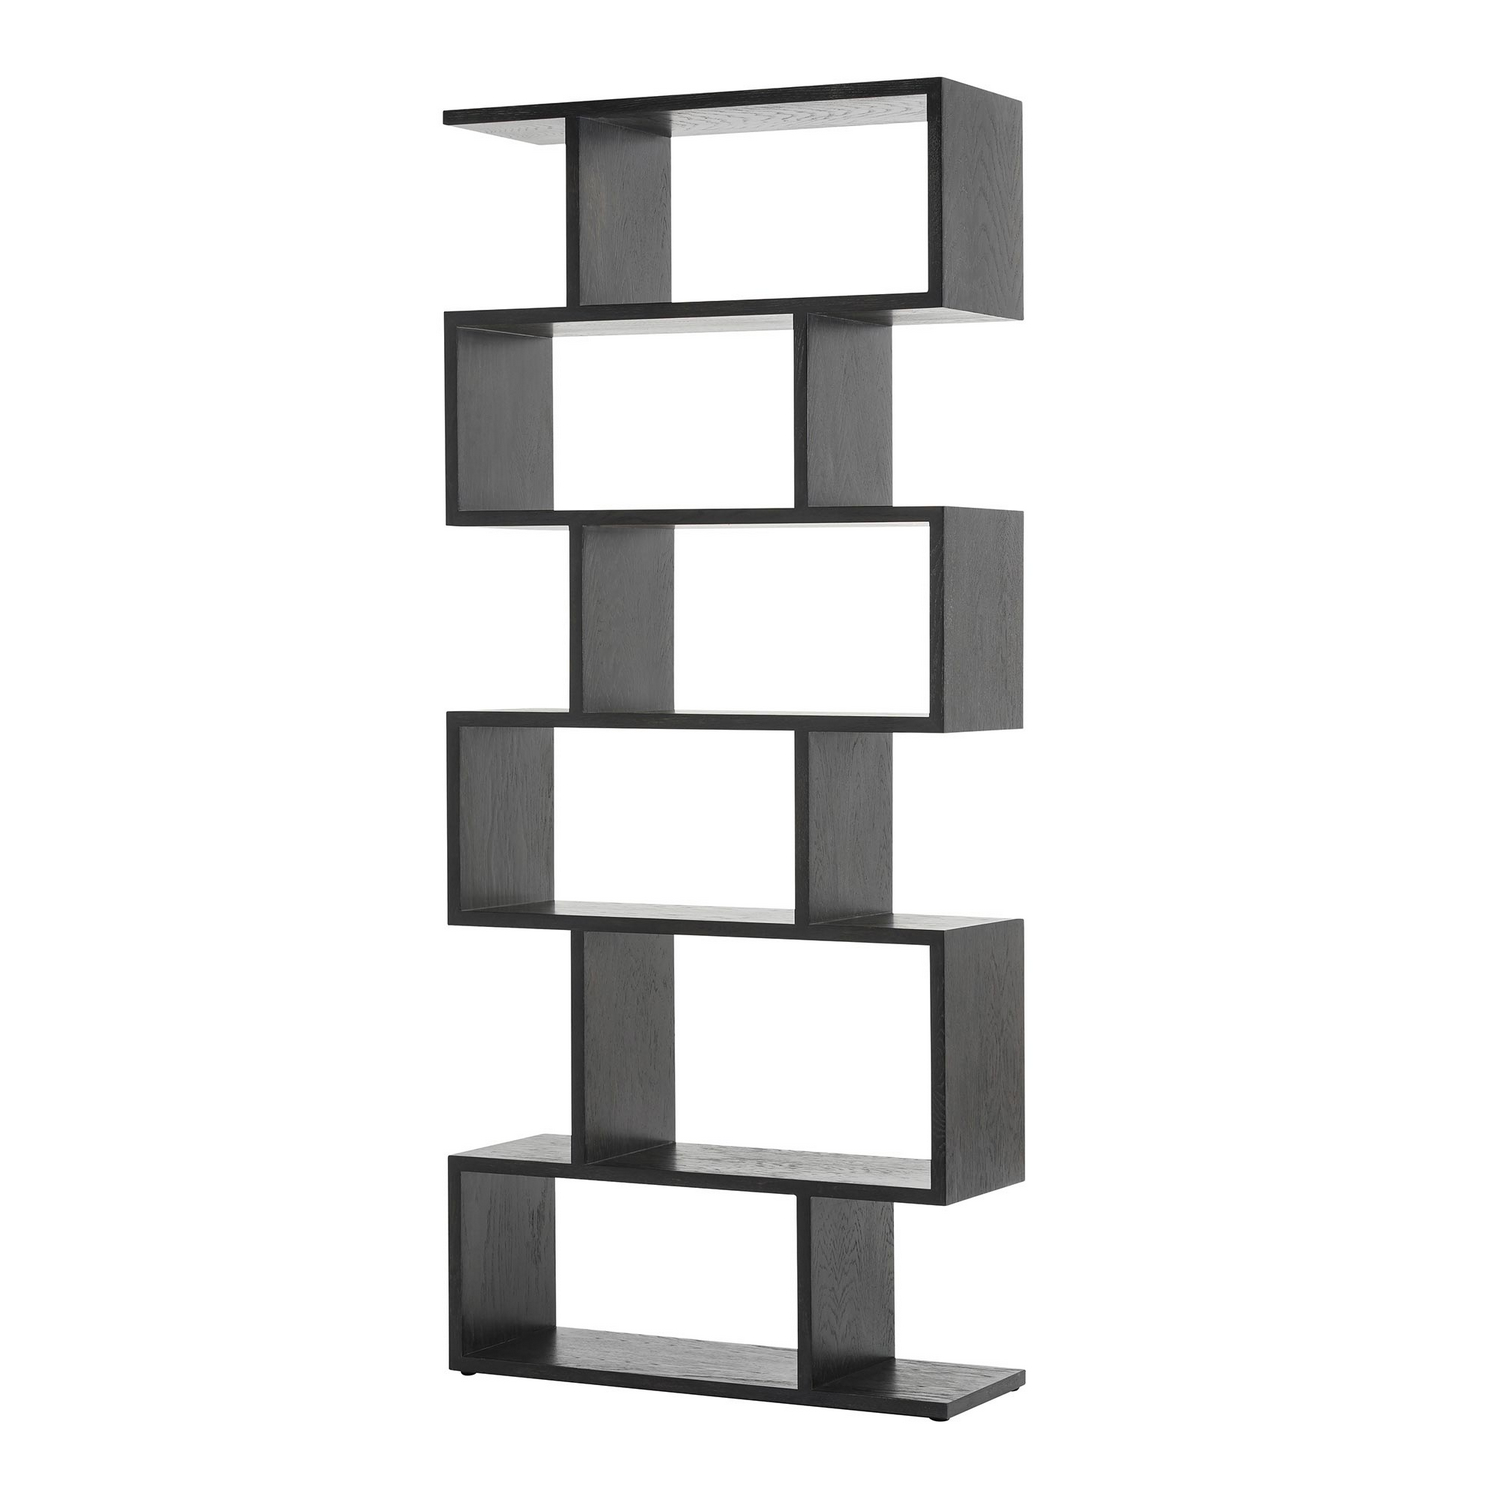 Bookshelf from the Horner collection by Arteriors 5500